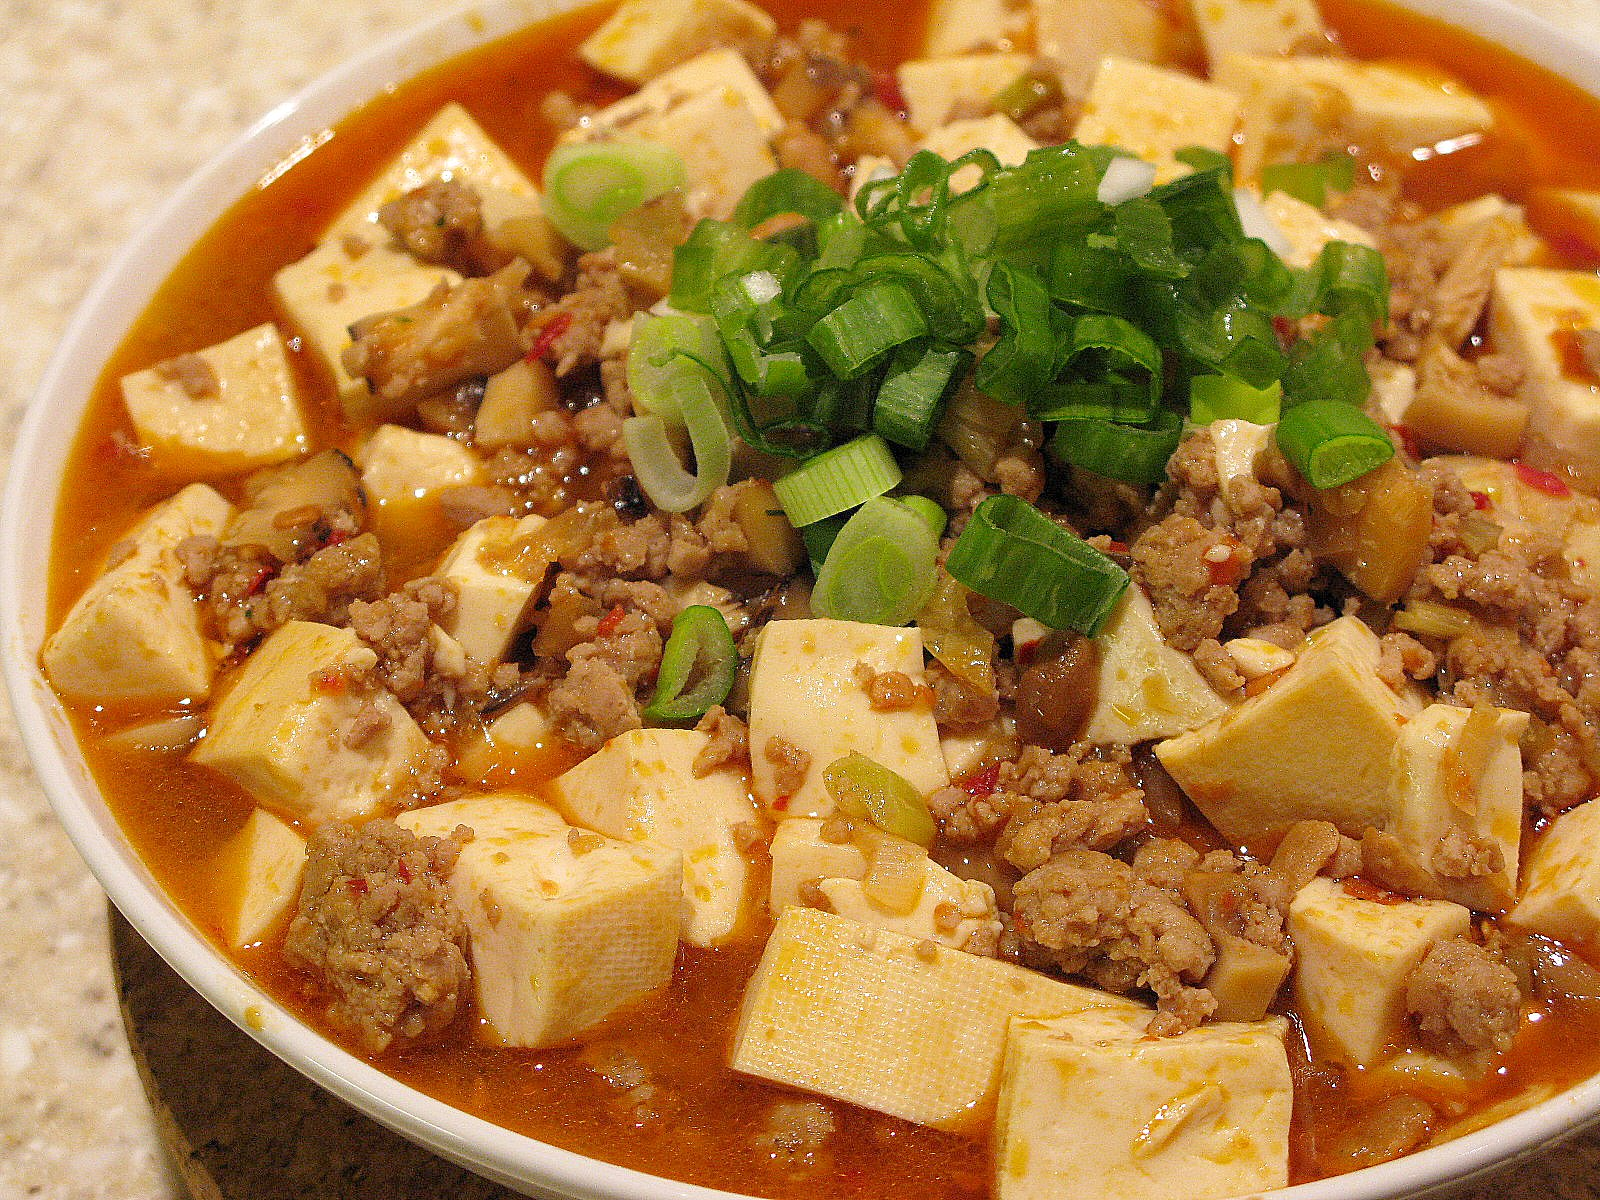 pan fried with ramps mint vegetarian mapo tofu recipe mapo dofu